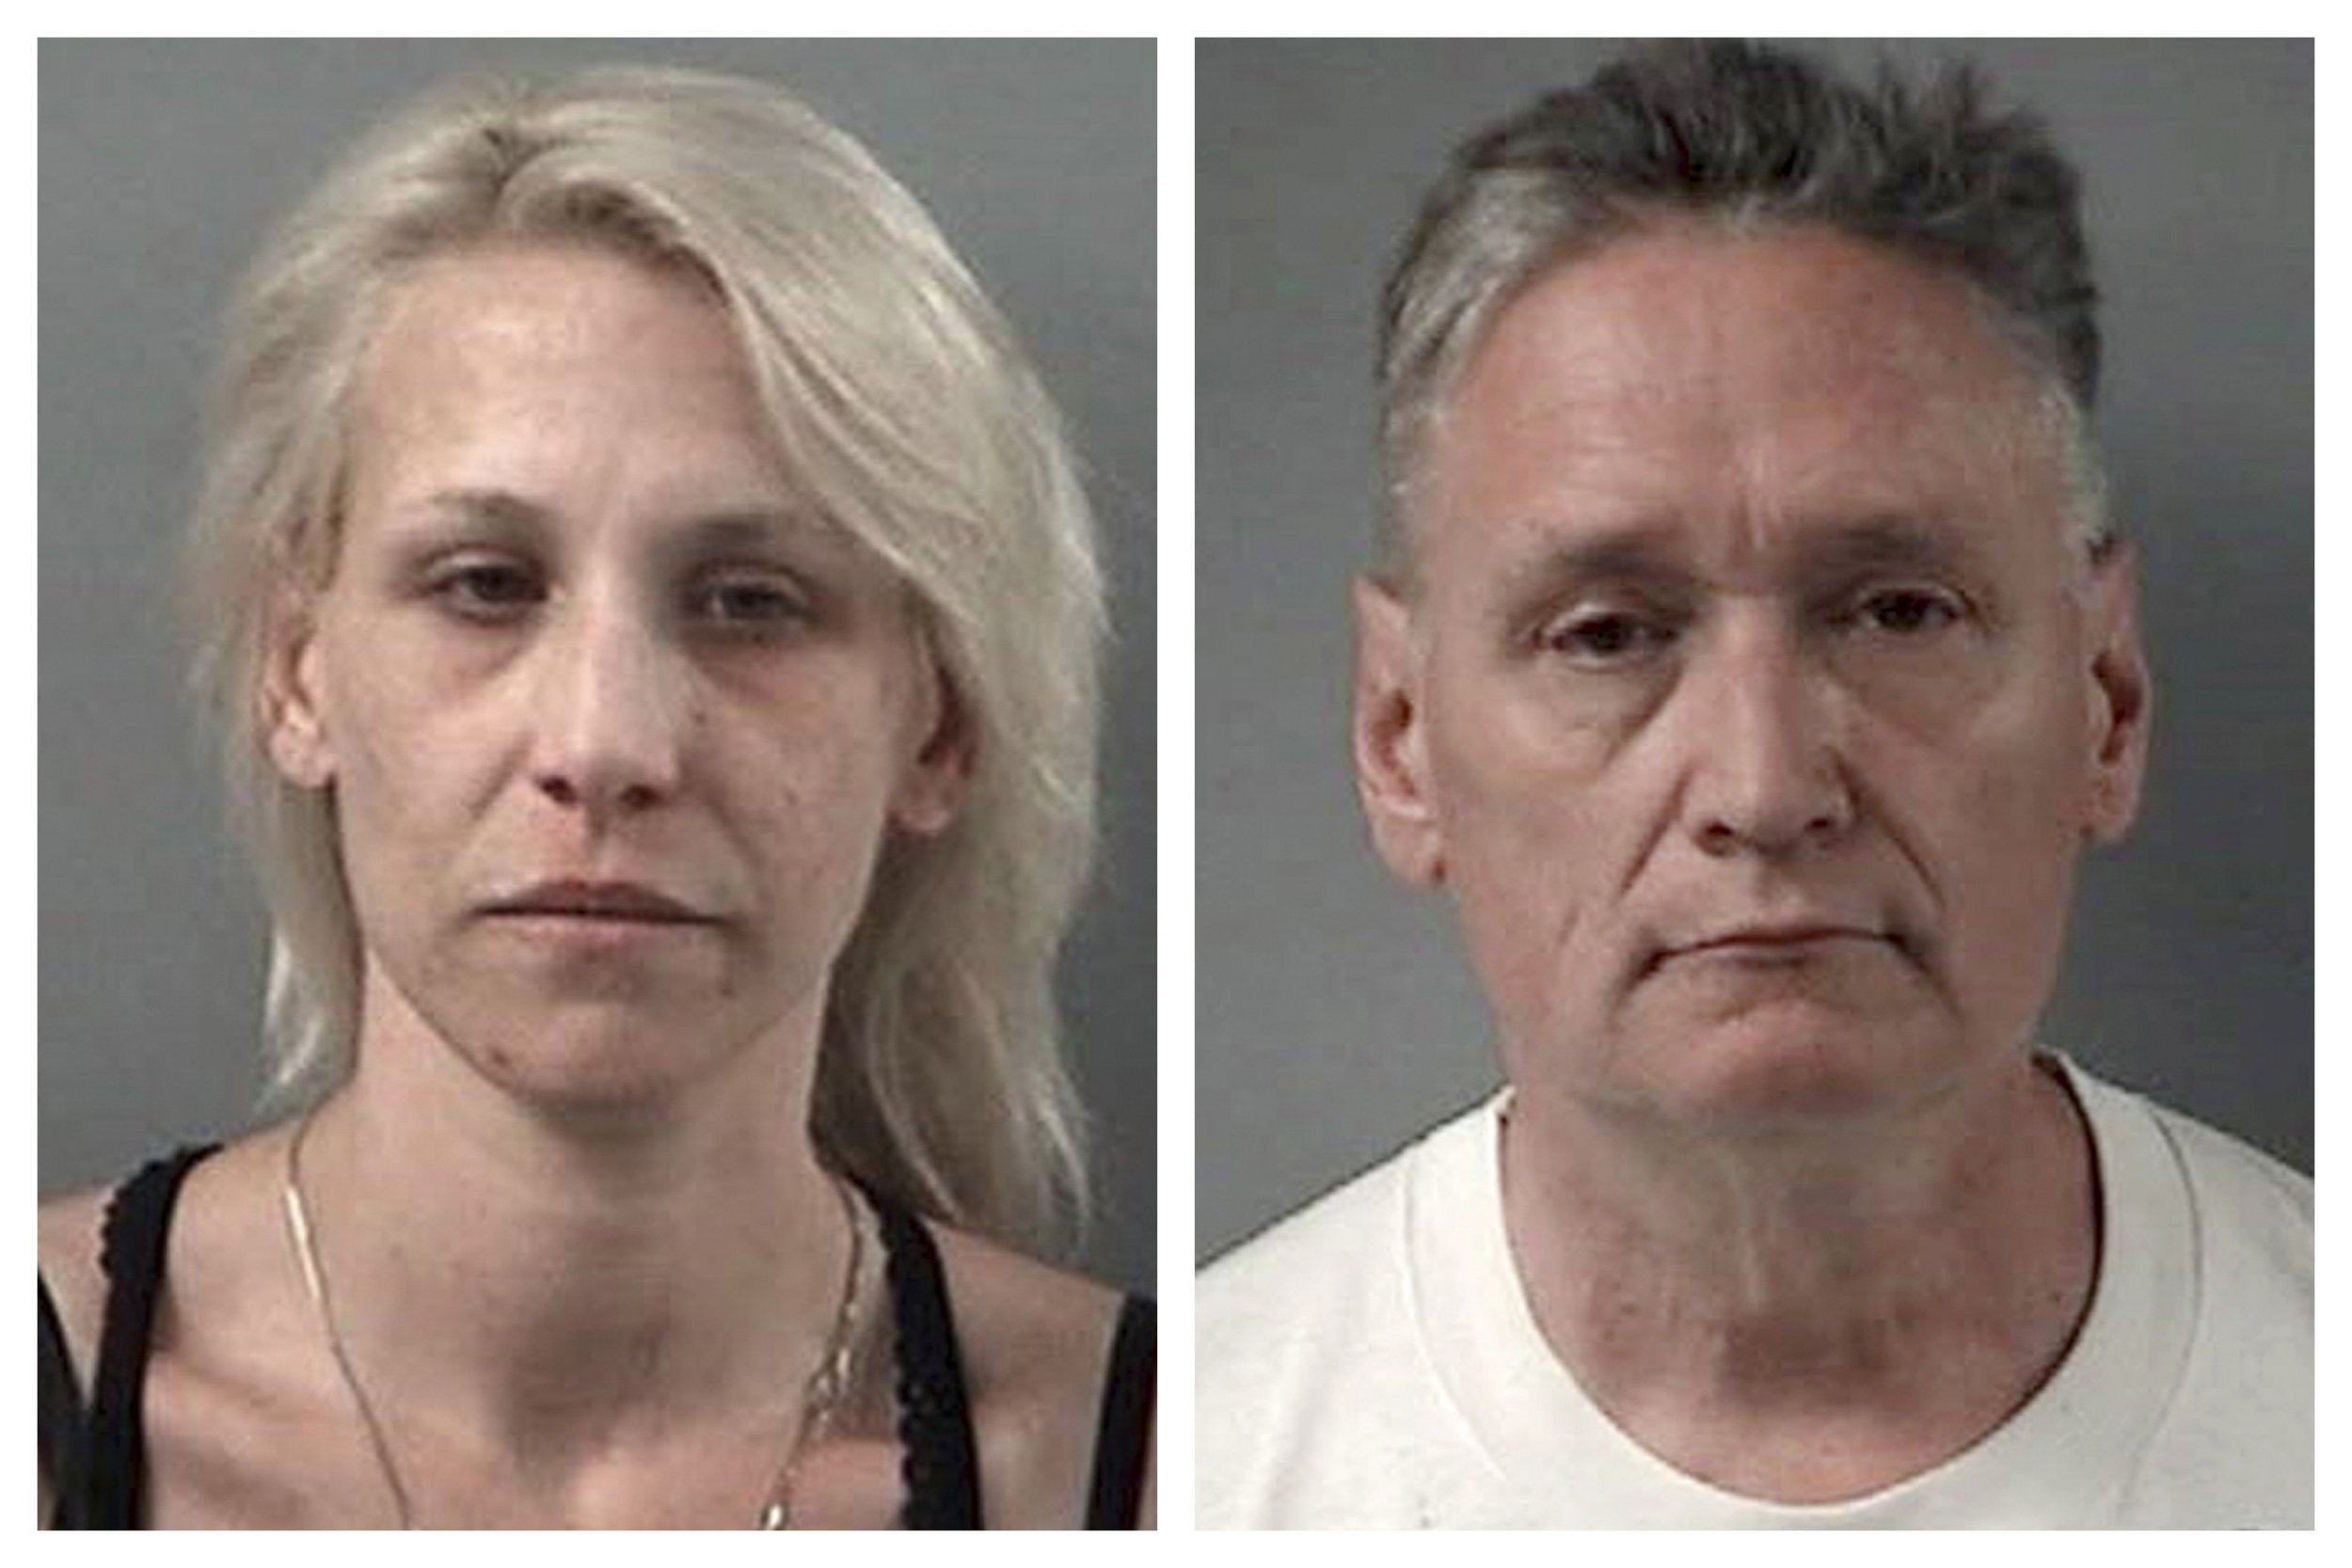 """This combination April 24, 2019 booking photos provided by the Crystal Lake, Ill., Police Department shows JoAnn Cunningham and her husband, Andrew Freund Sr. On Wednesday, authorities dug up the body of a 5-year-old boy, believed to be Andrew """"AJ"""" Freund, who was reported missing the previous week and charged his parents with murder and other counts. (Crystal Lake Police Department via AP)"""